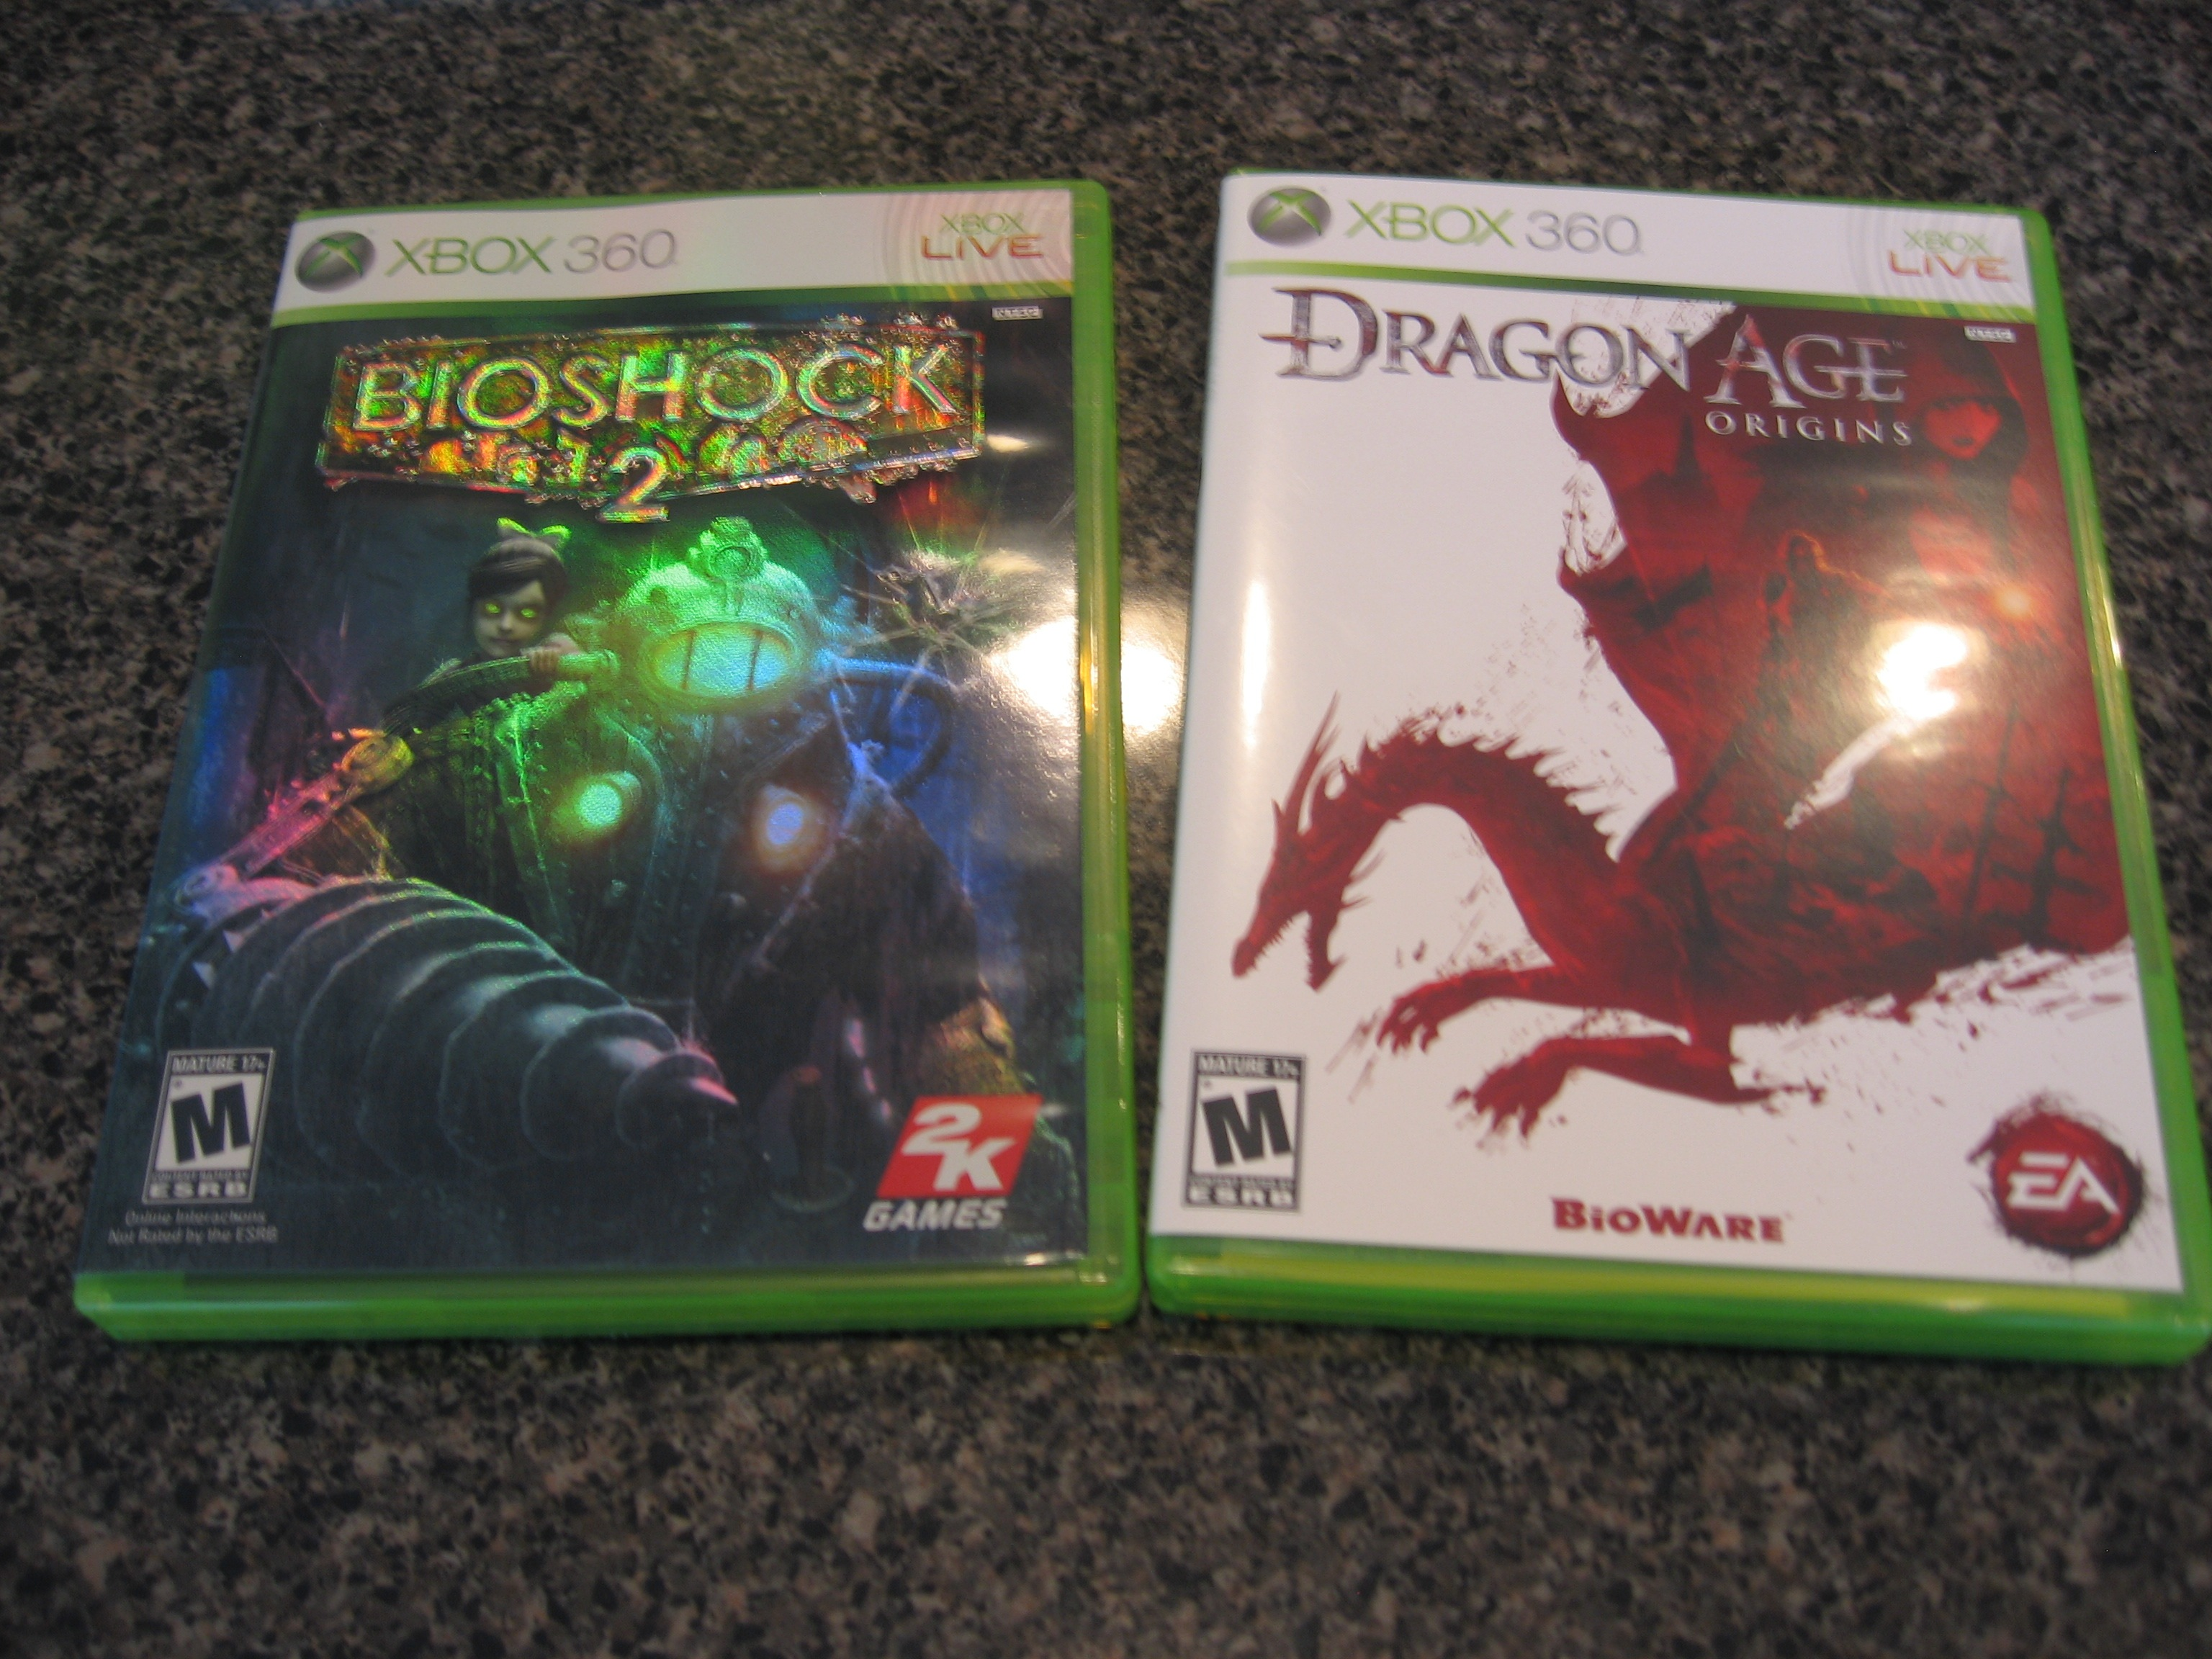 Bioshock 2 and Dragon Age Origns